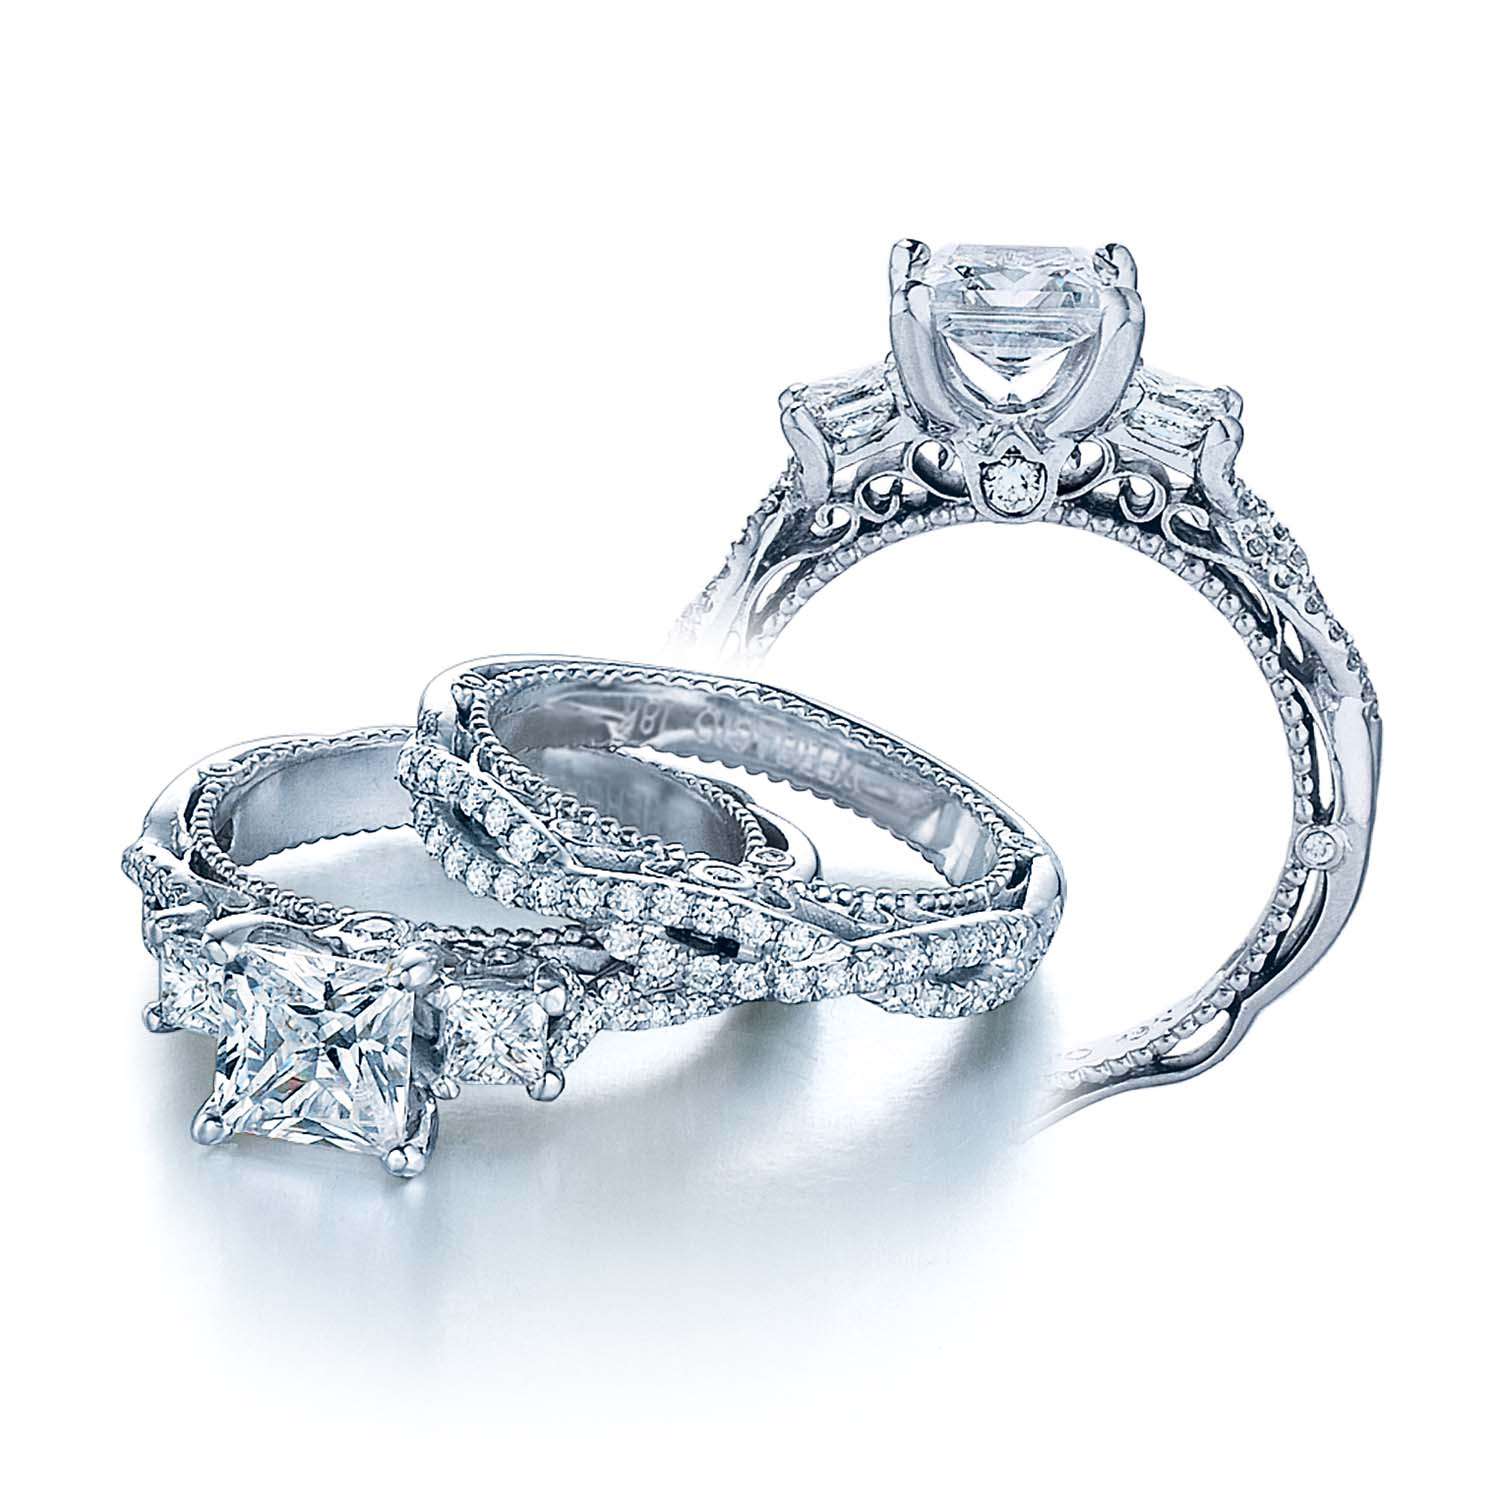 Verragio Debuts New Engagement Ring Collections At JCK And